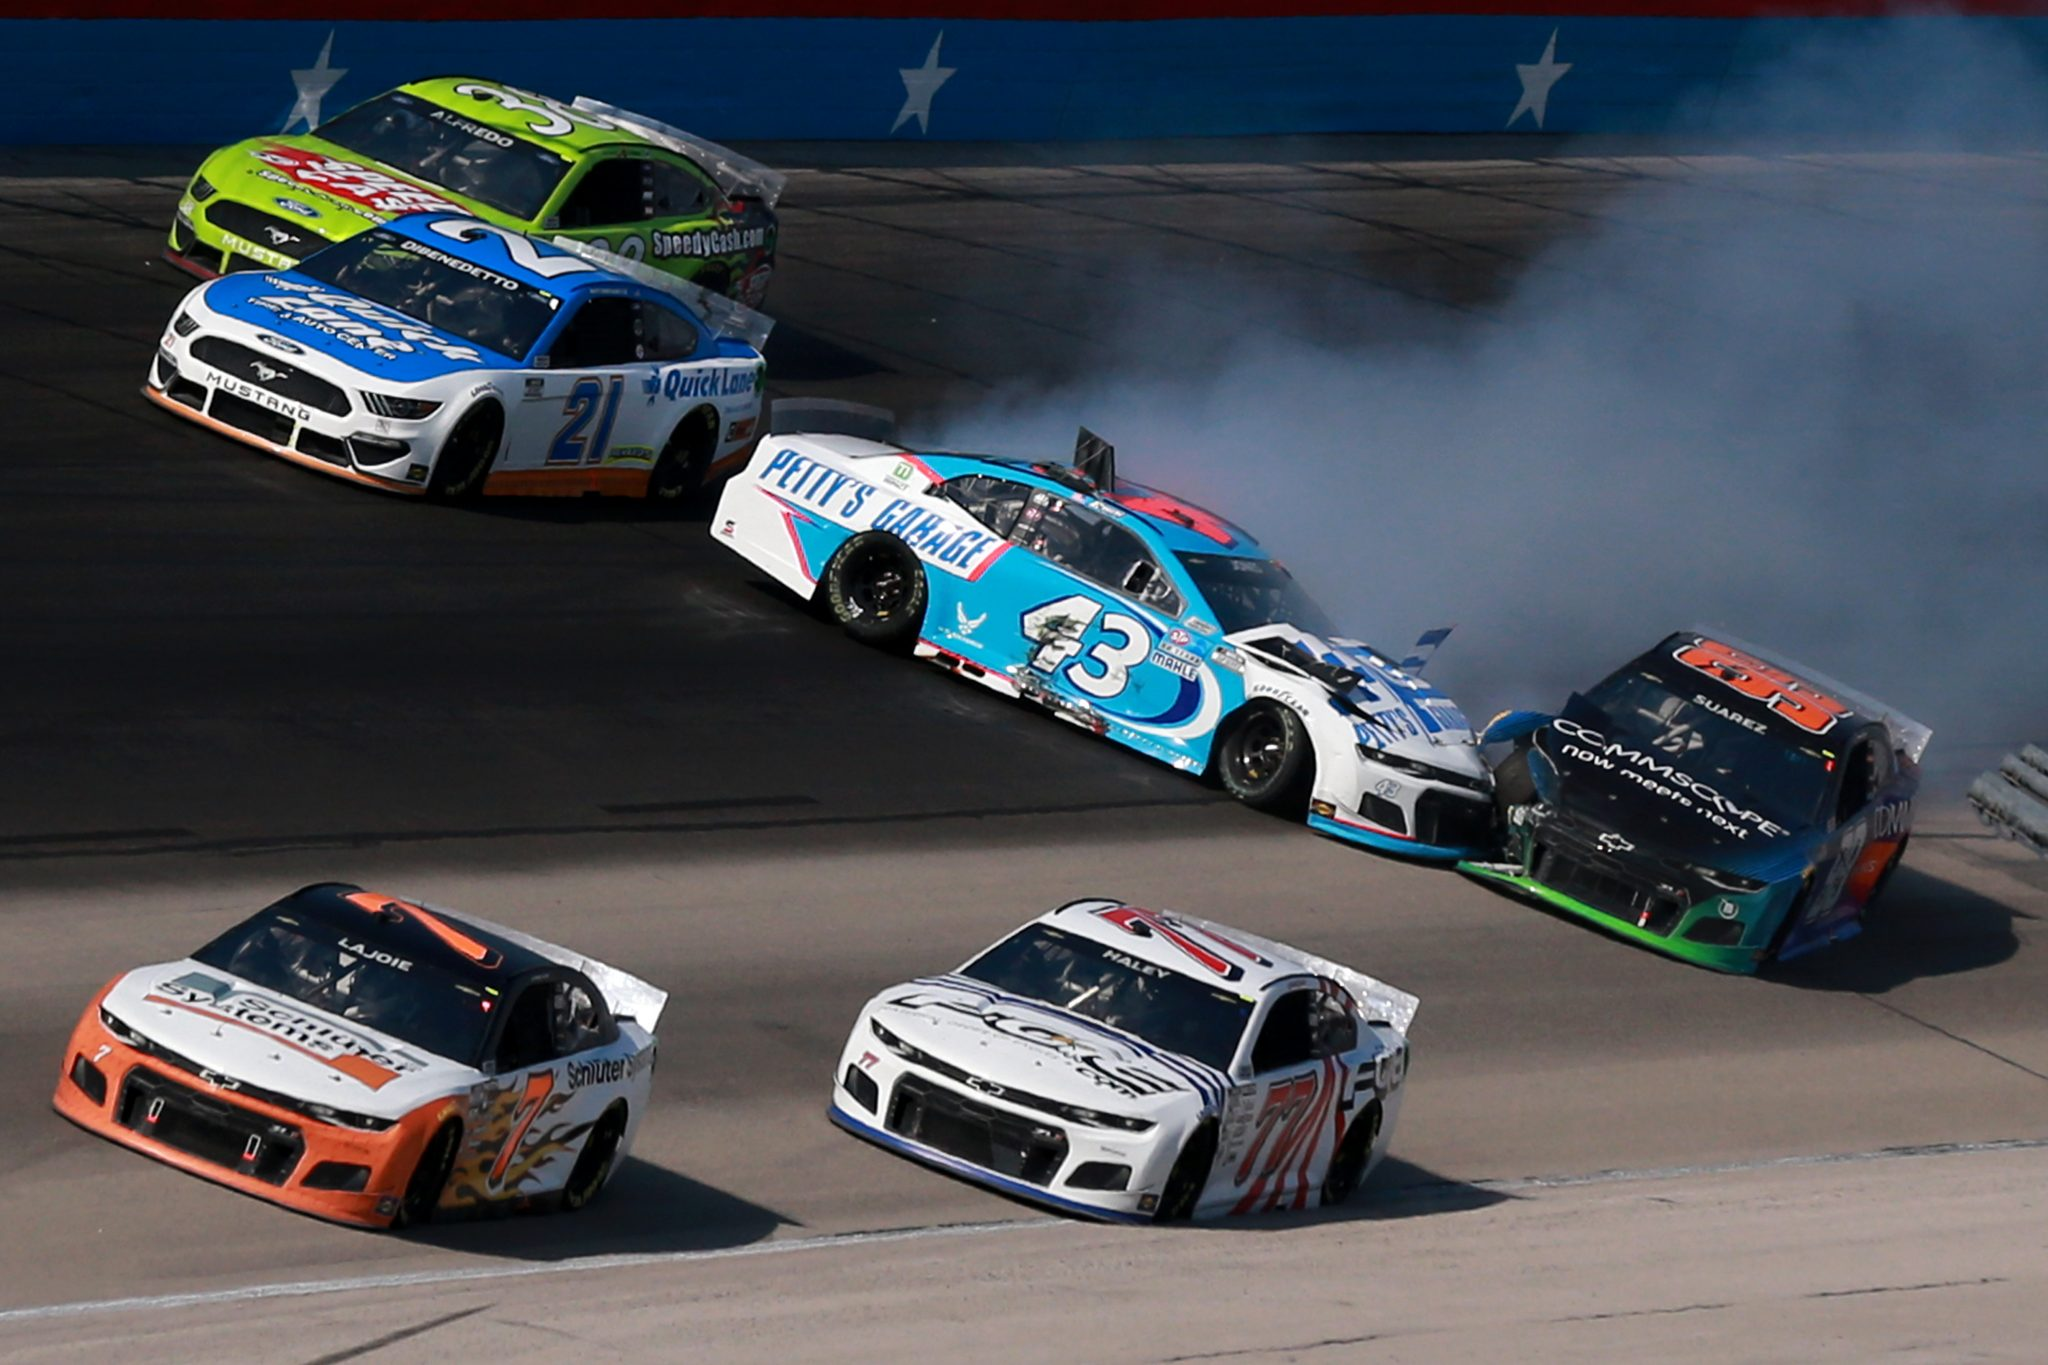 FORT WORTH, TEXAS - JUNE 13: Erik Jones, driver of the #43 Petty's Garage Chevrolet, spins into Daniel Suarez, driver of the #99 CommScope Chevrolet, as Corey LaJoie, driver of the #7 Schluter Systems Chevrolet, Justin Haley, driver of the #77 Fraternal Order of Eagles Chevrolet, and Matt DiBenedetto, driver of the #21 Quick Lane Tire & Auto Center Ford, avoid the on-track incident during the NASCAR All-Star Open at Texas Motor Speedway on June 13, 2021 in Fort Worth, Texas. (Photo by Sean Gardner/Getty Images) | Getty Images